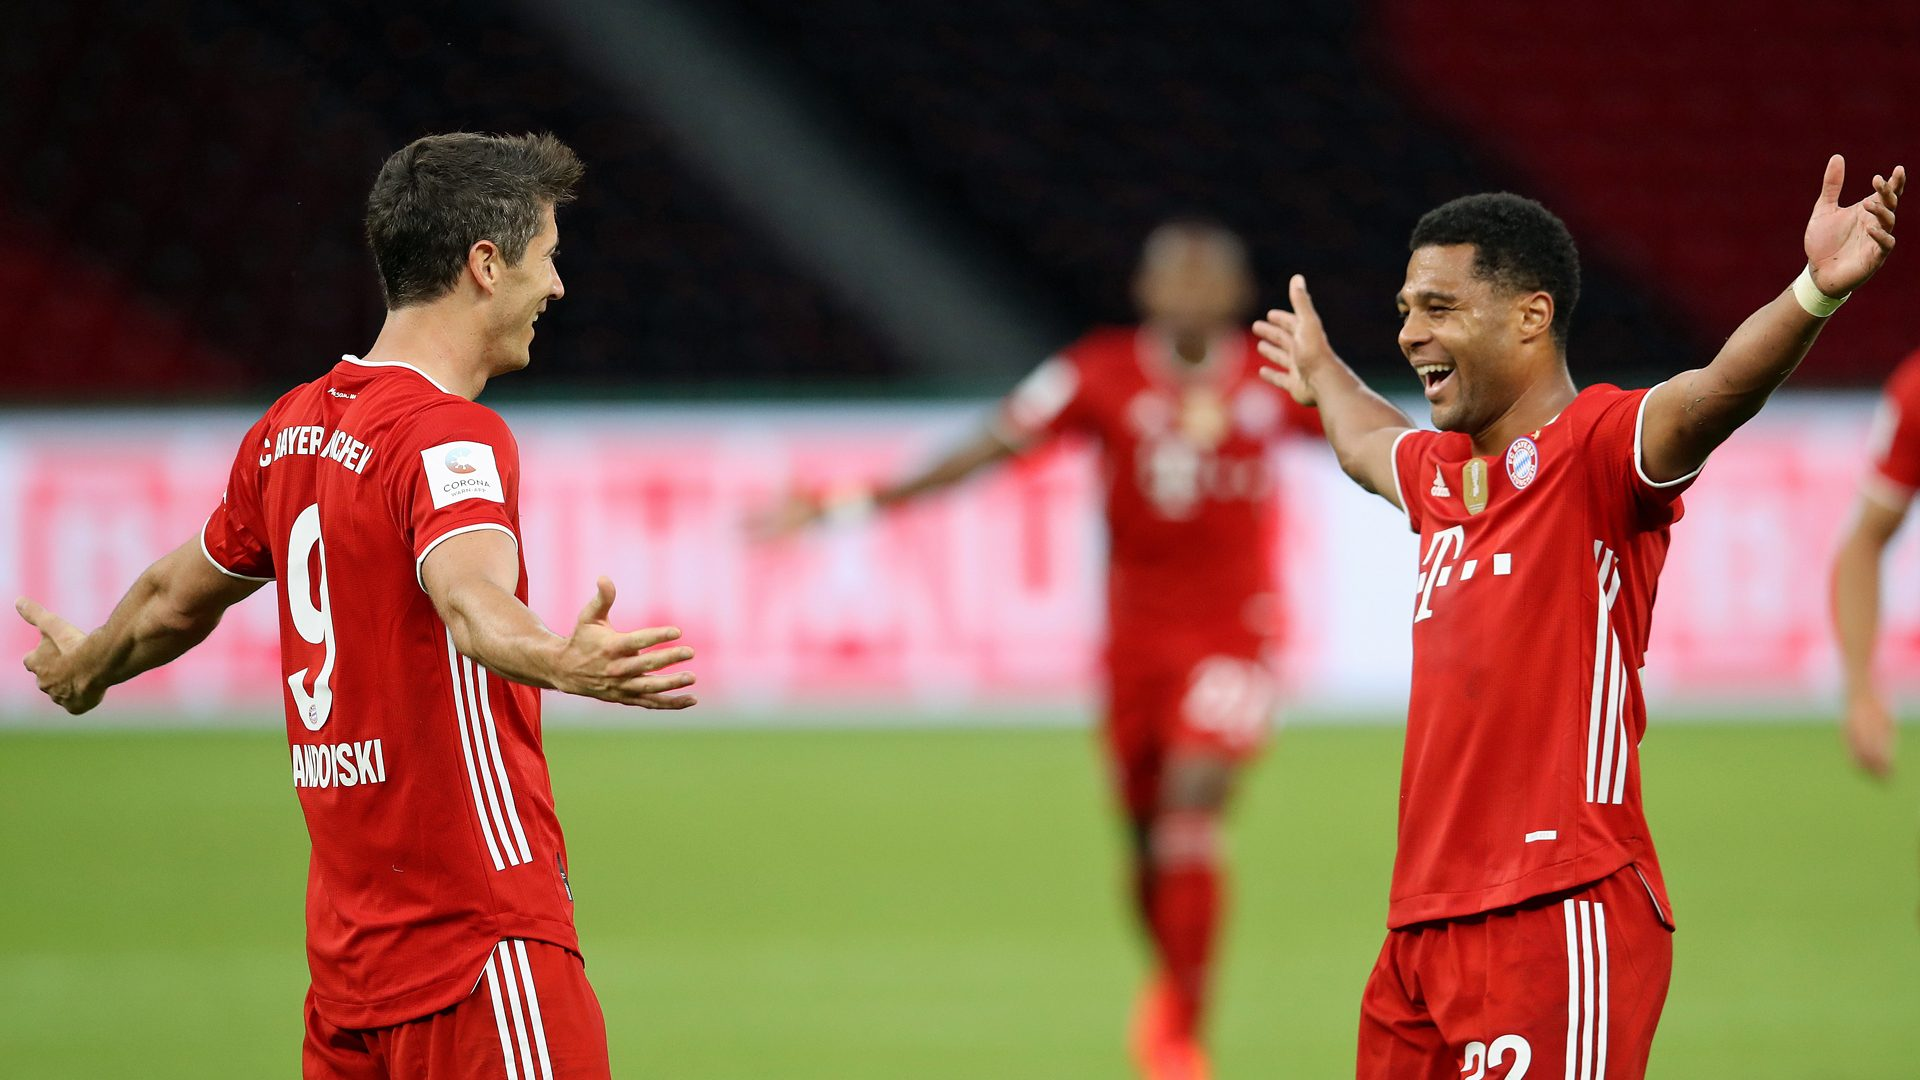 Bundesliga Robert Lewandowski S Brace Helps Bayern Munich Seal A League And Cup Double With Dfb Cup Victory Over Bayer Leverkusen